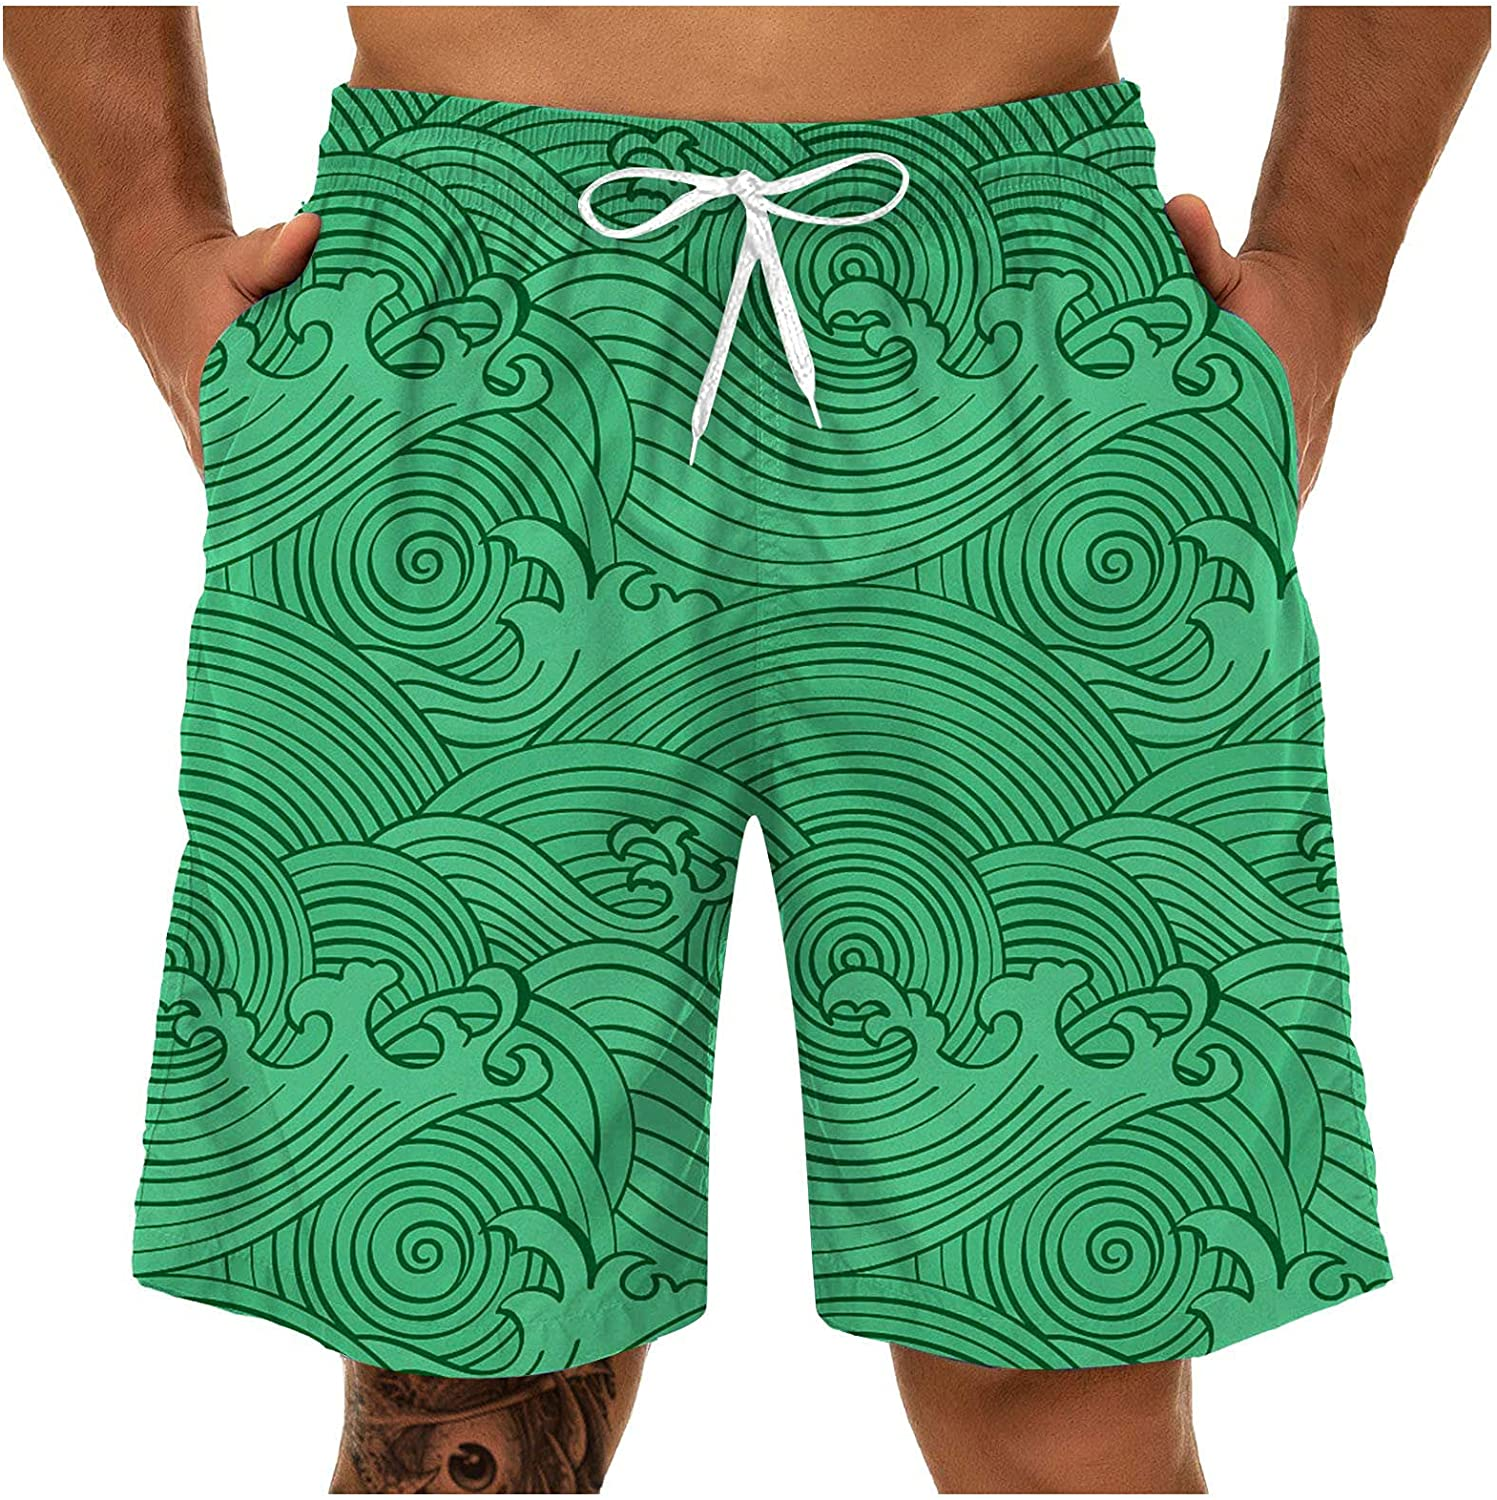 FUNEY Mens Swim Trunks Quick Dry Board Shorts 3D Print Breathable Swim Shorts Funny Swimwear Bathing Suits with Pockets